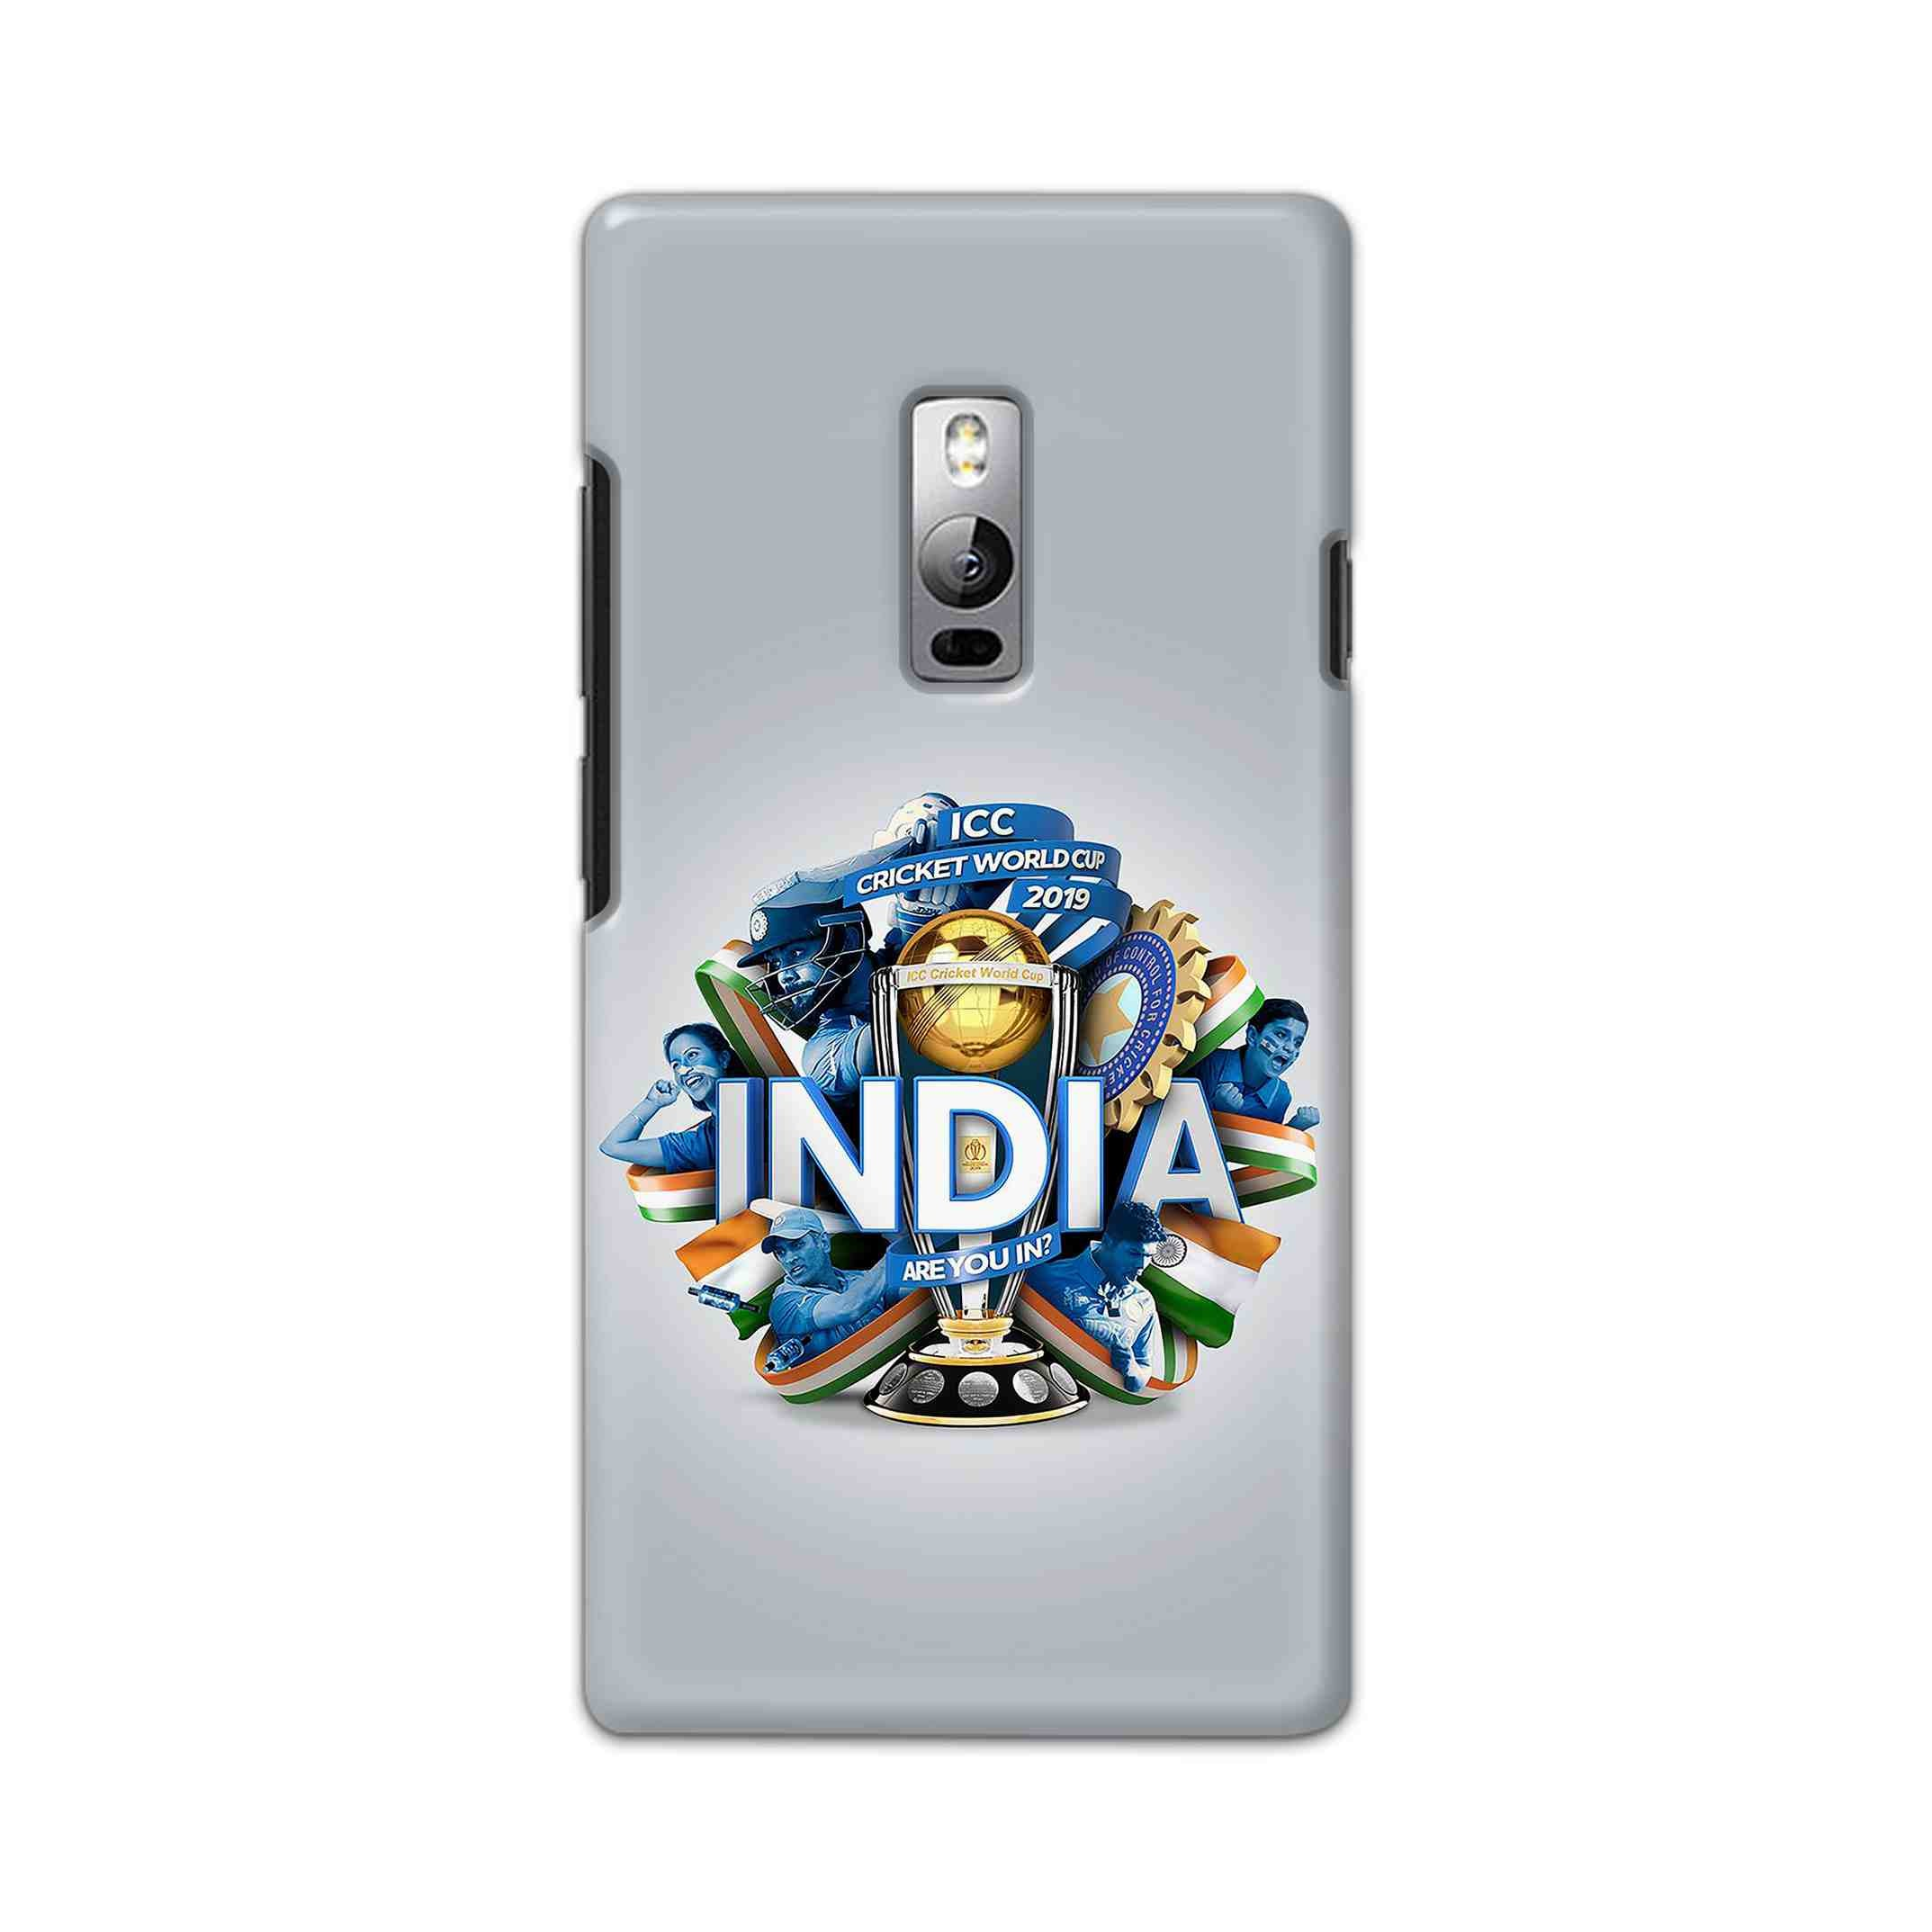 Icc India Cup Icon Printed Cases For One Plus 2